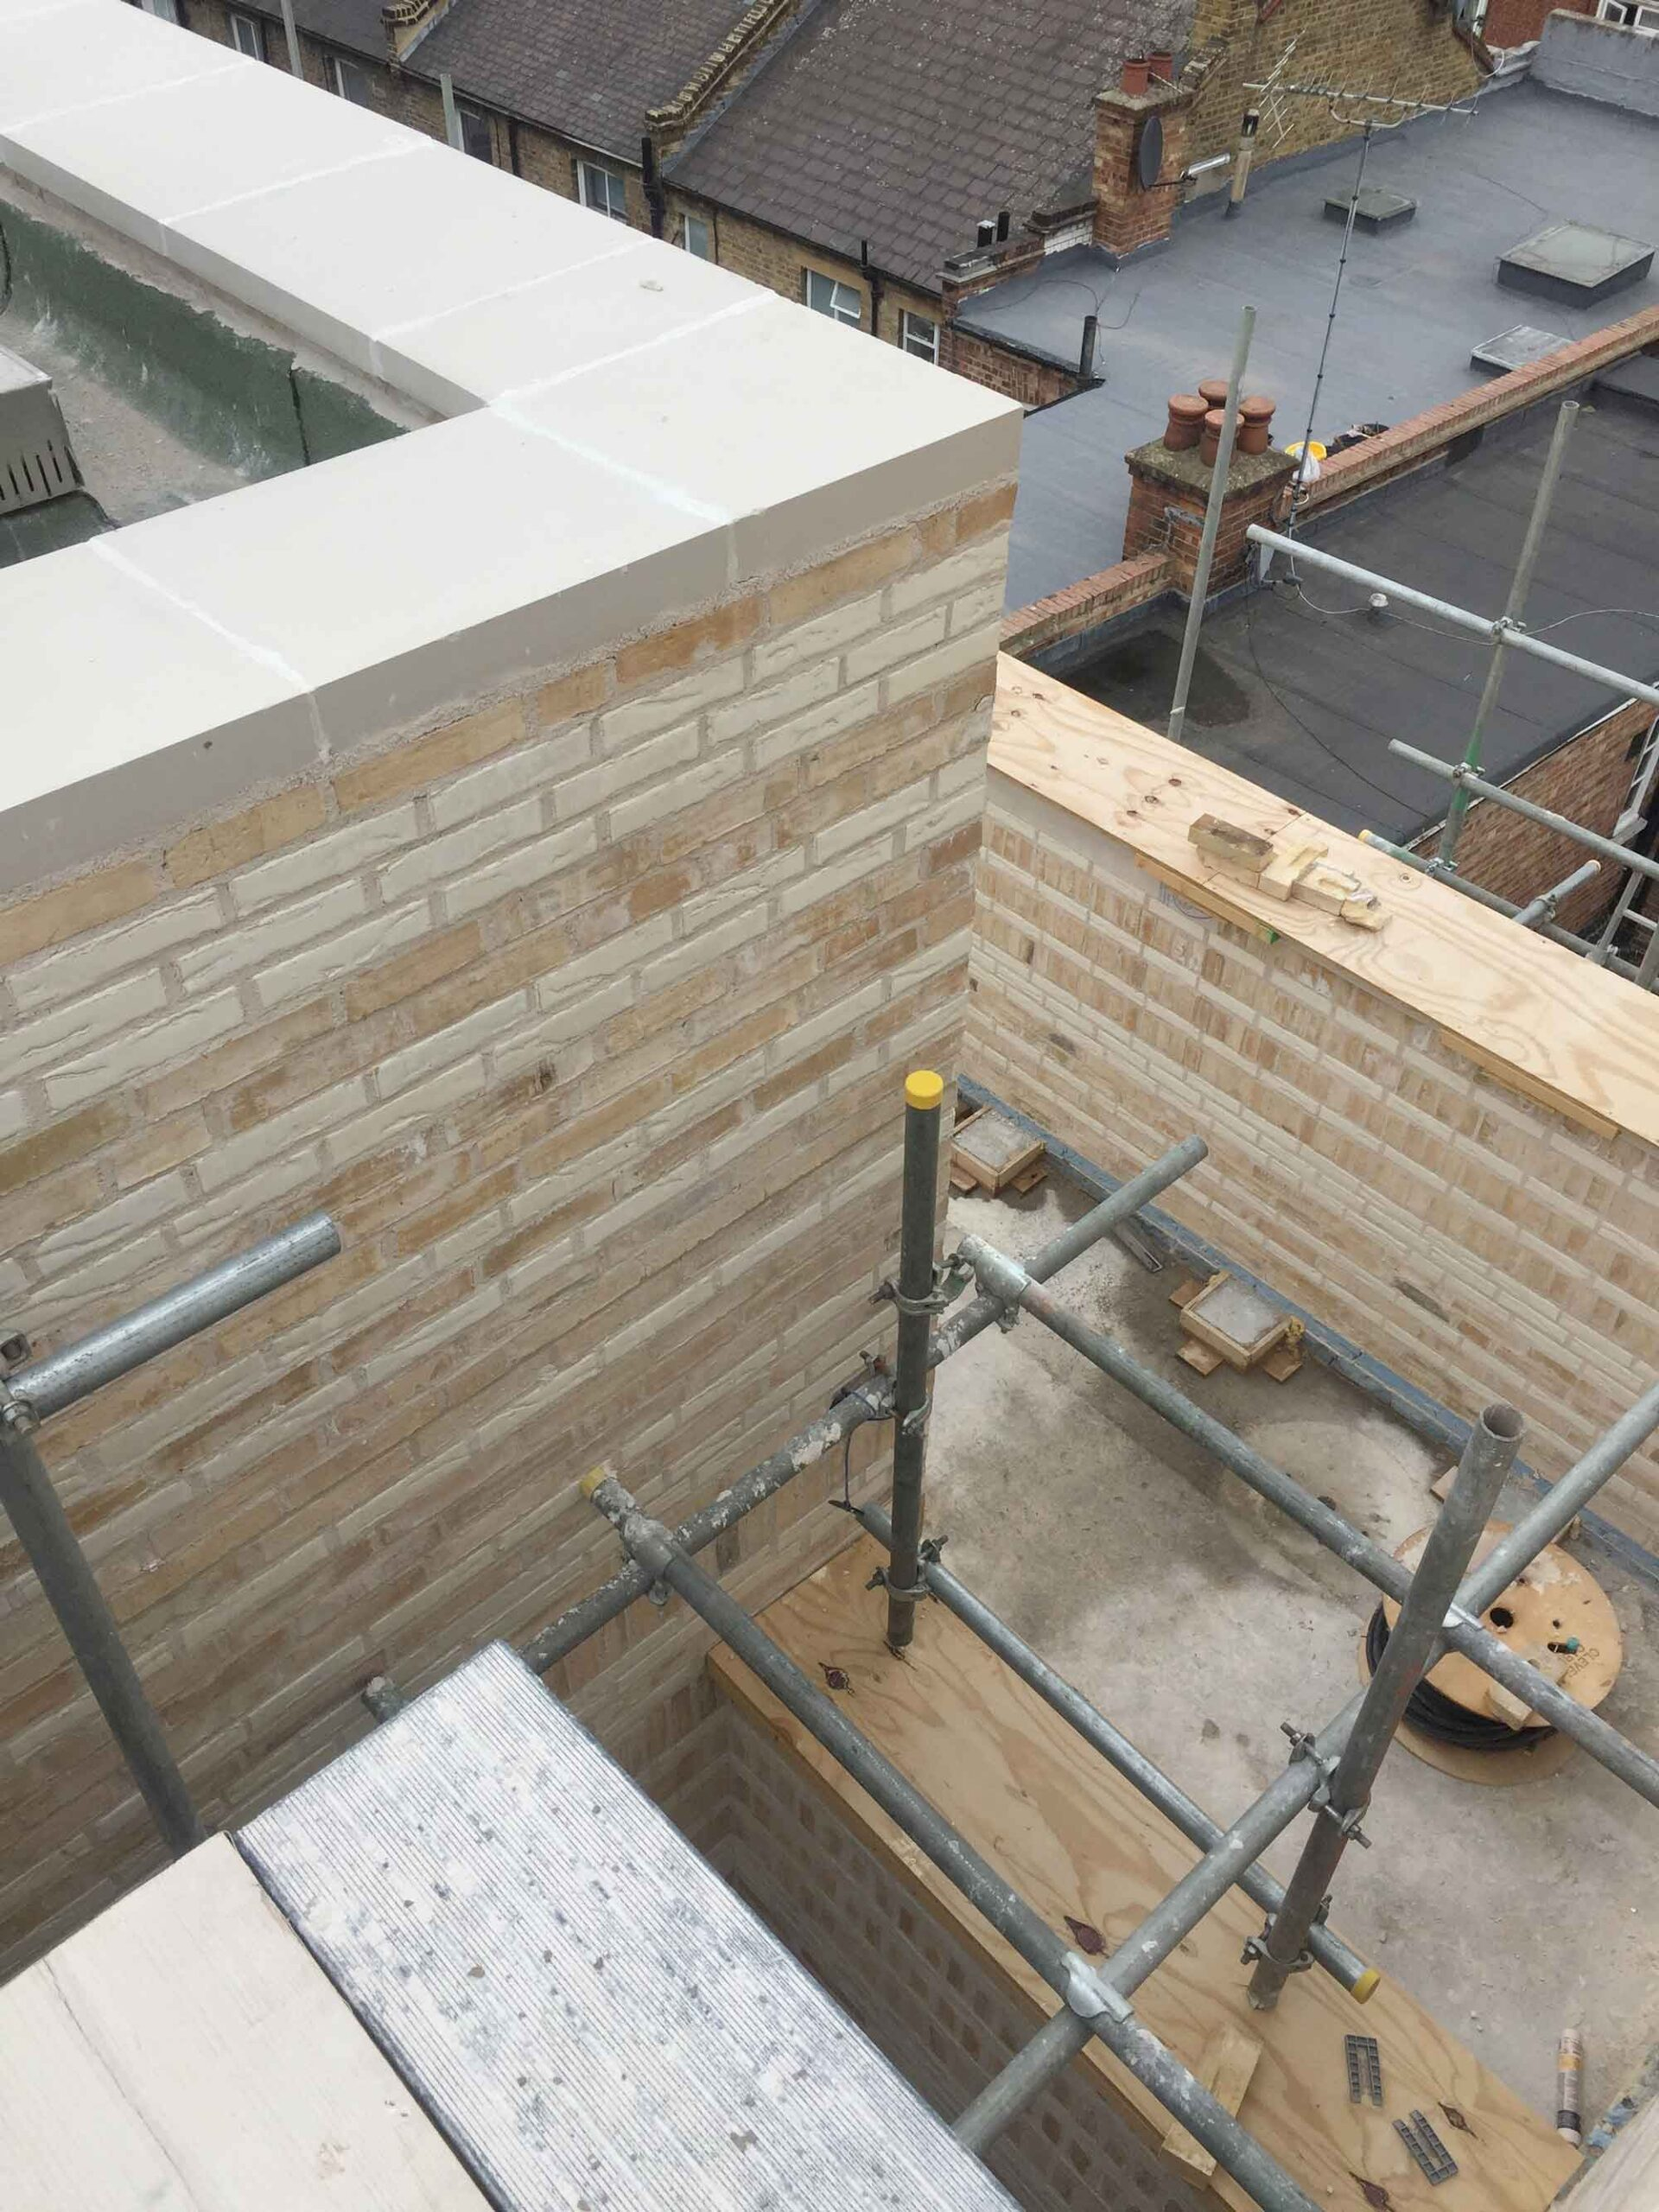 westminster-fire-station-openstudio-architects-stone-coping-detail